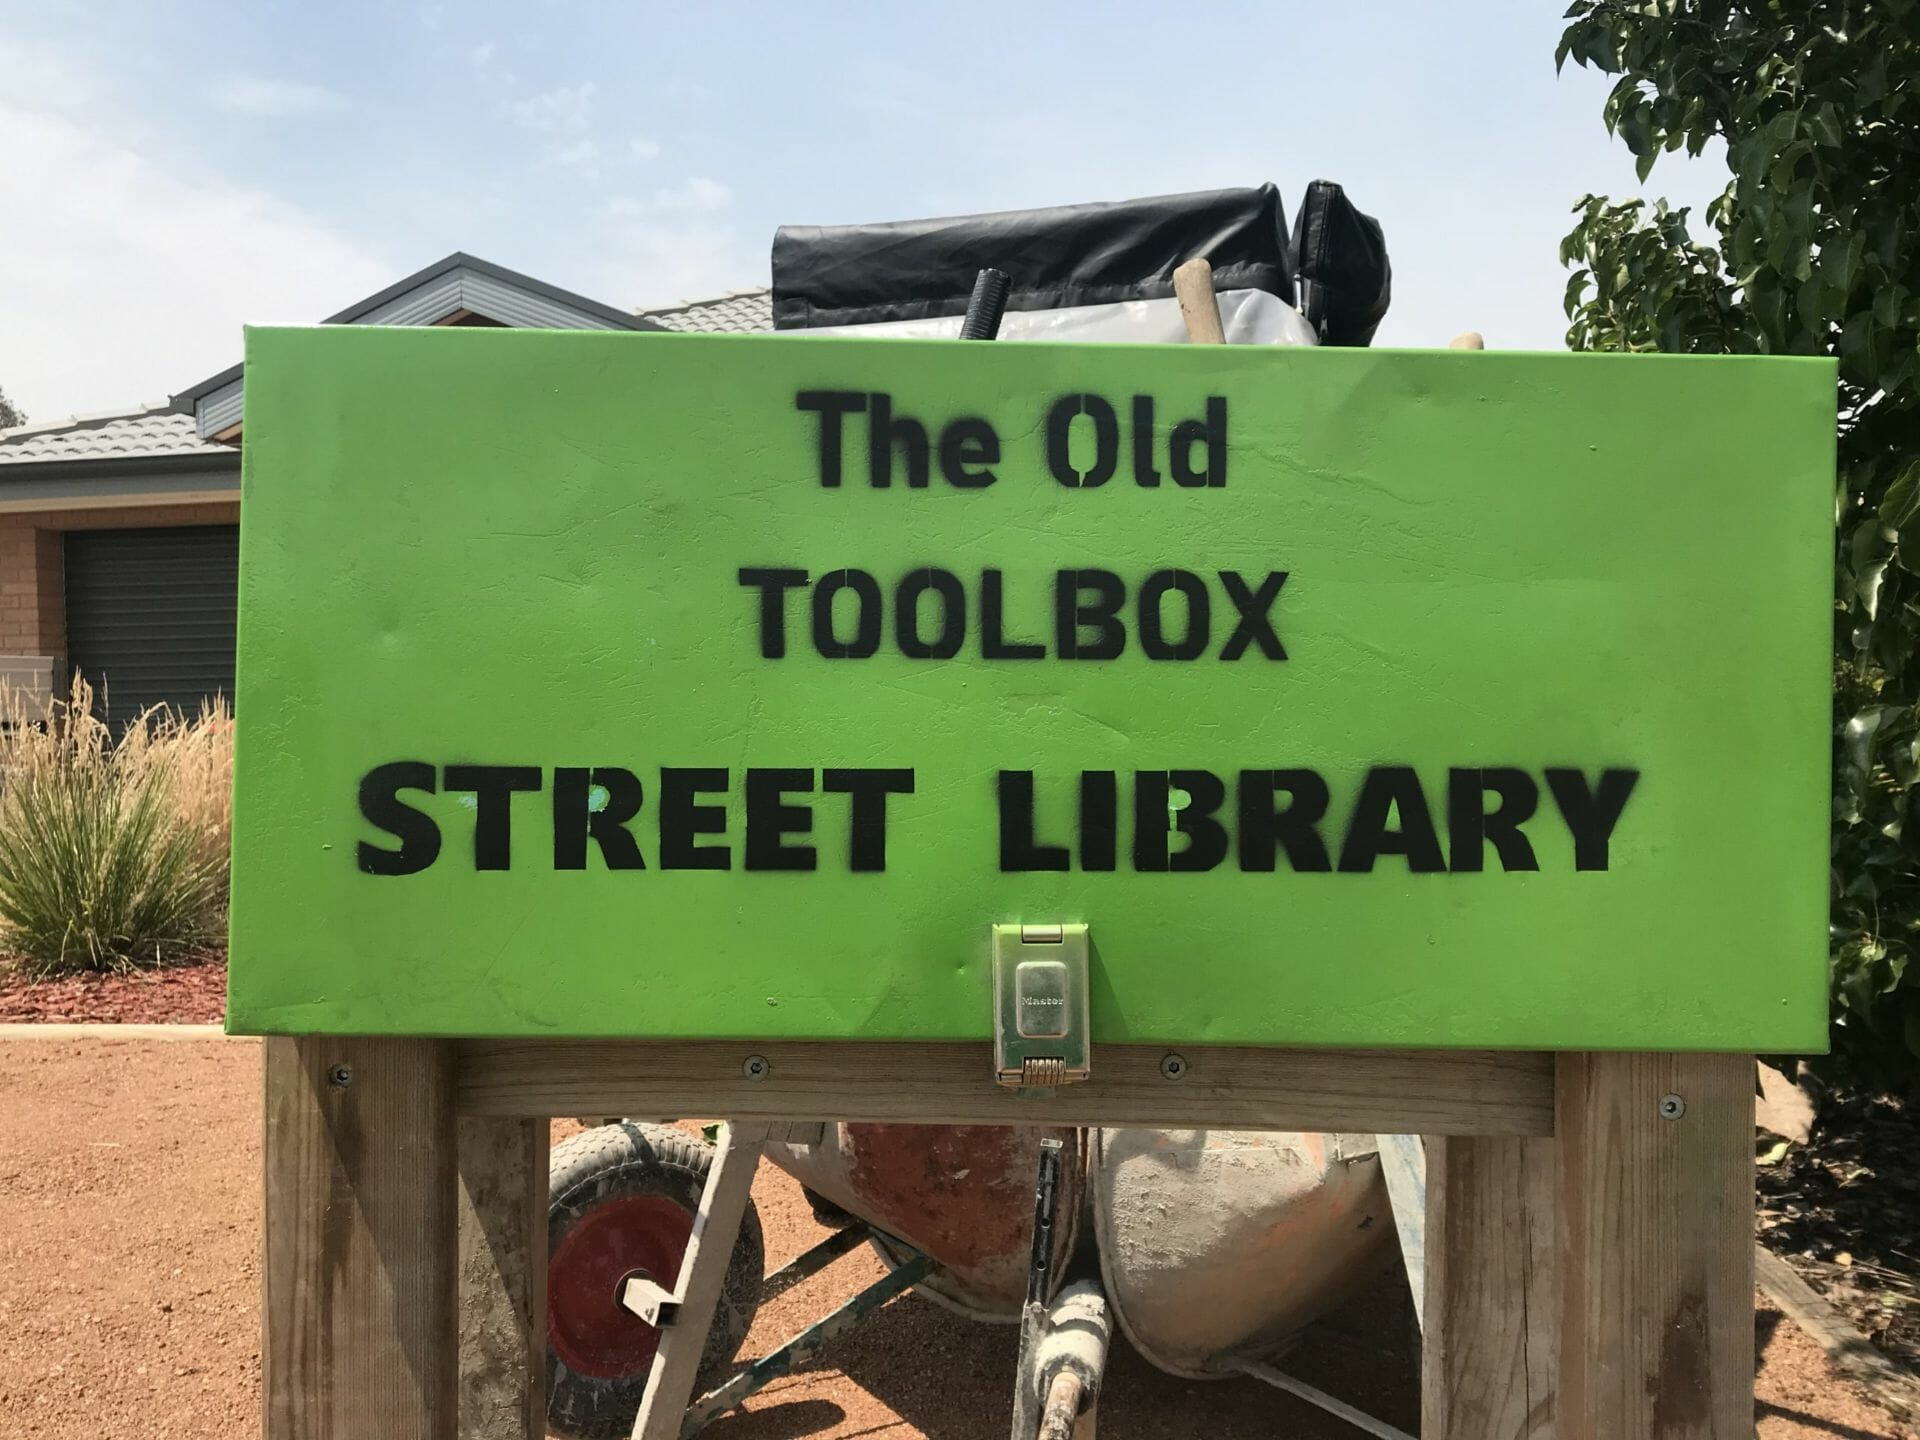 'The Old Toolbox' STREET LIBRARY